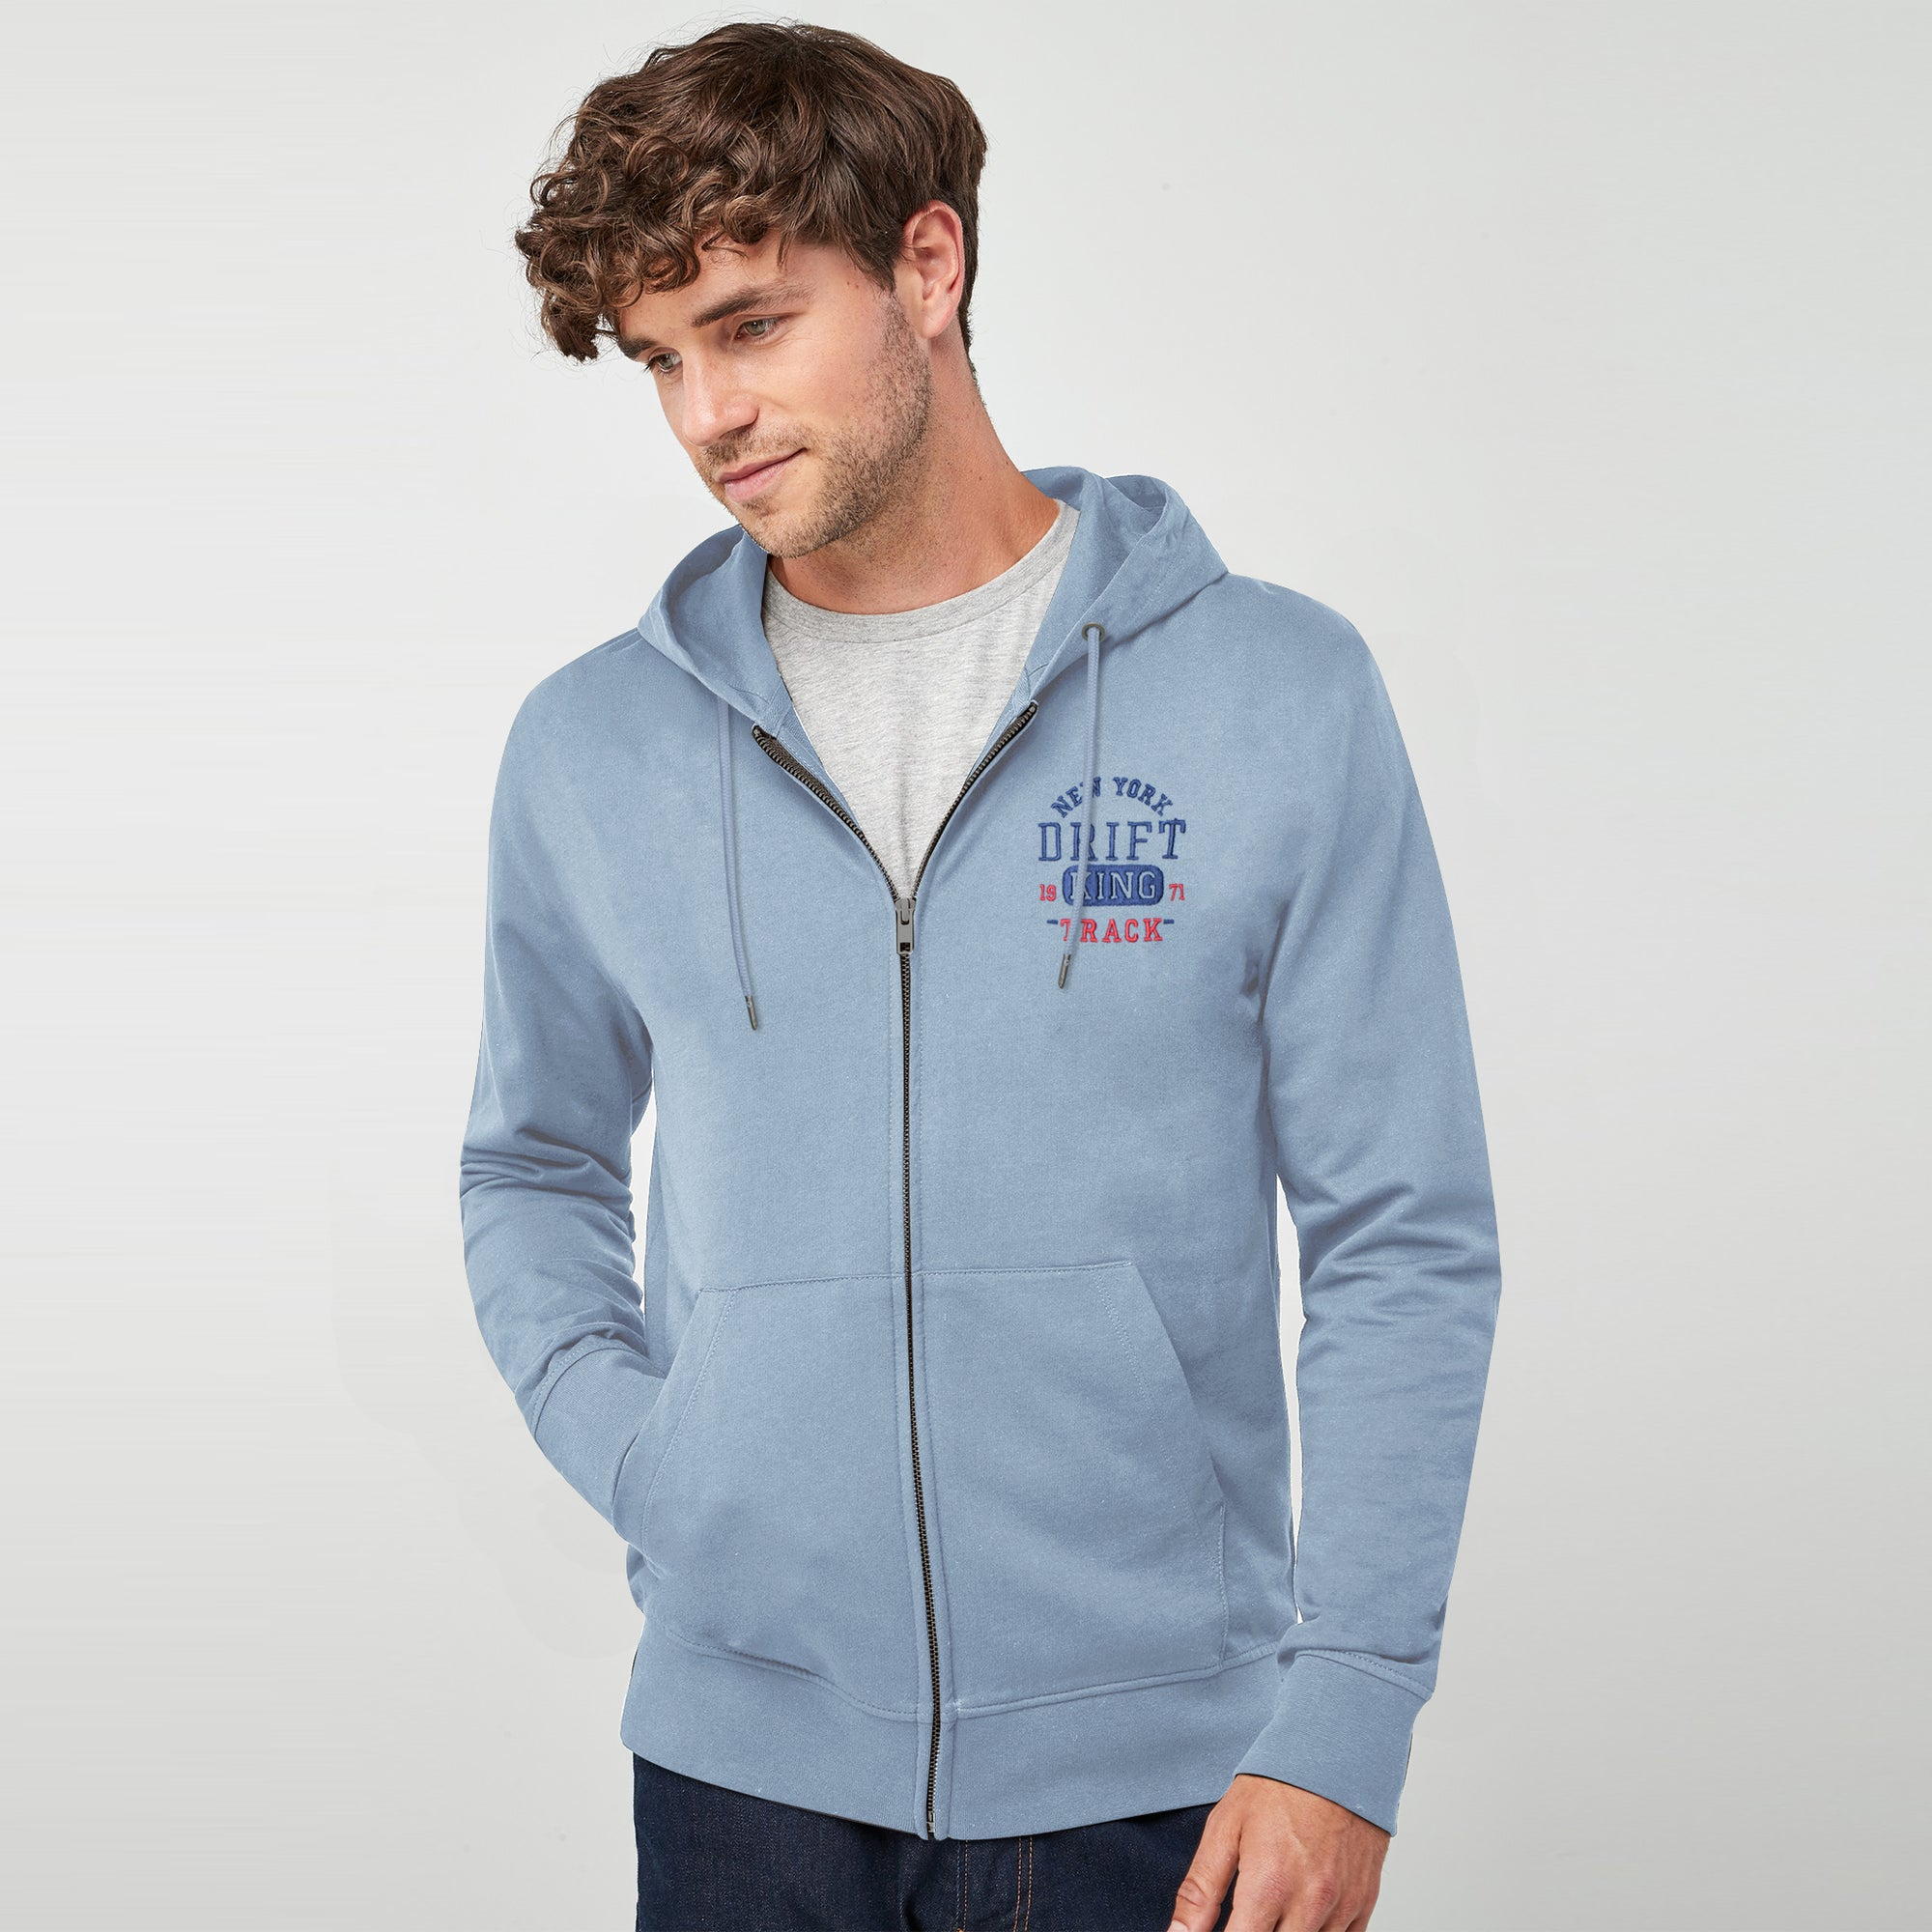 Drift King Fleece Full Zipper Hoodie For Men-Light Sky-BE6337